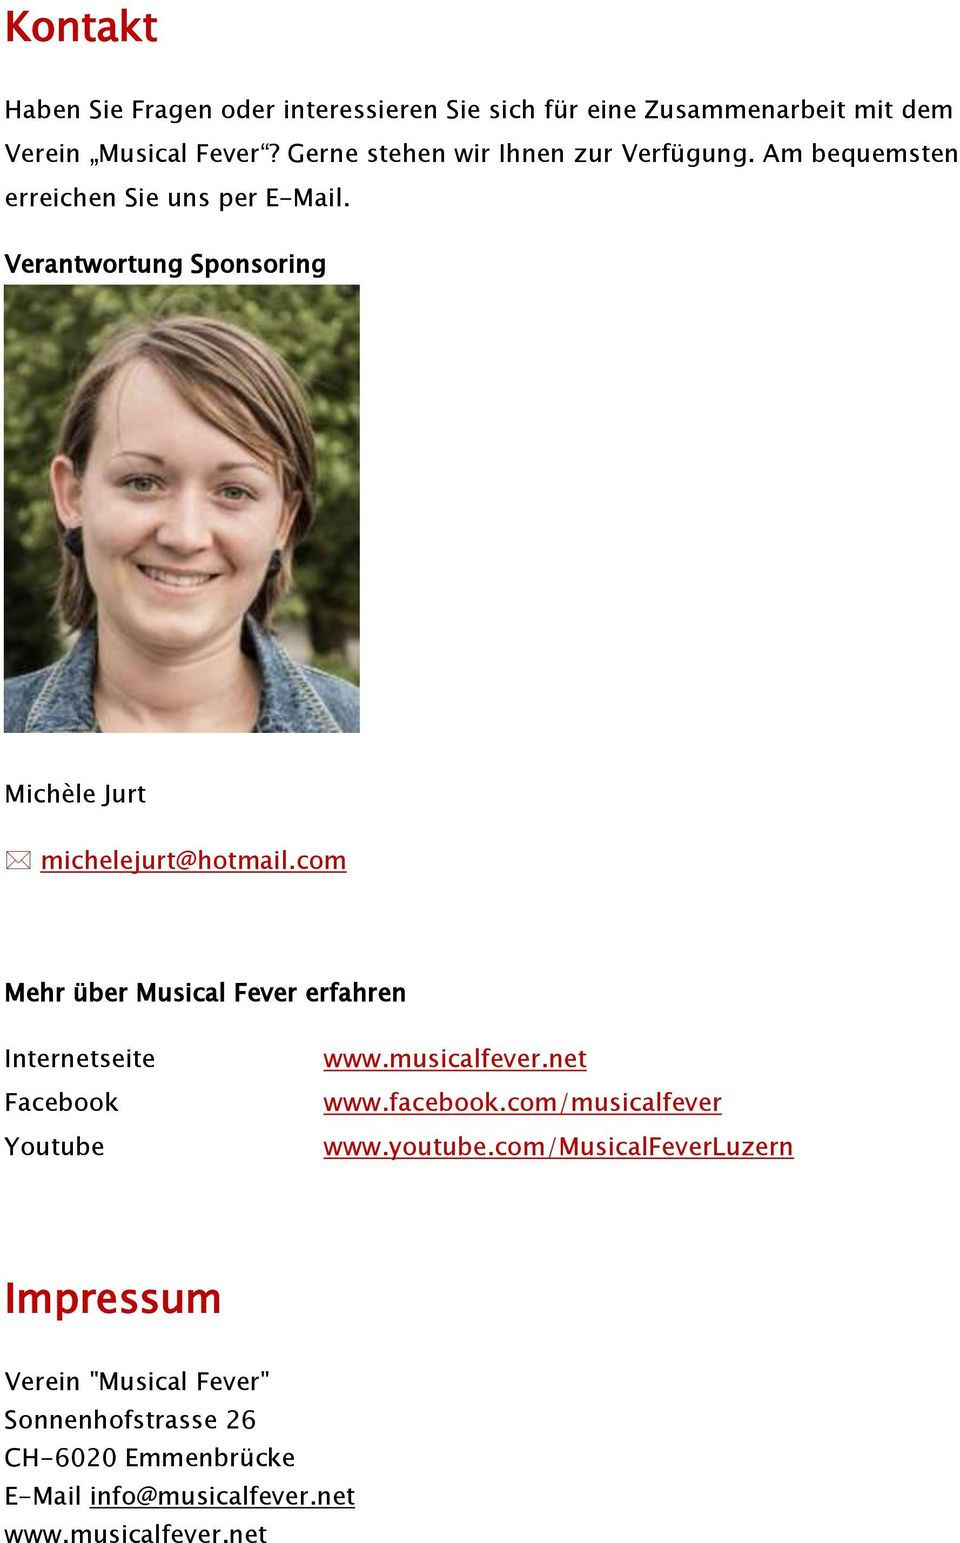 Verantwortung Sponsoring Michèle Jurt michelejurt@hotmail.com Mehr über Musical Fever erfahren Internetseite Facebook Youtube www.